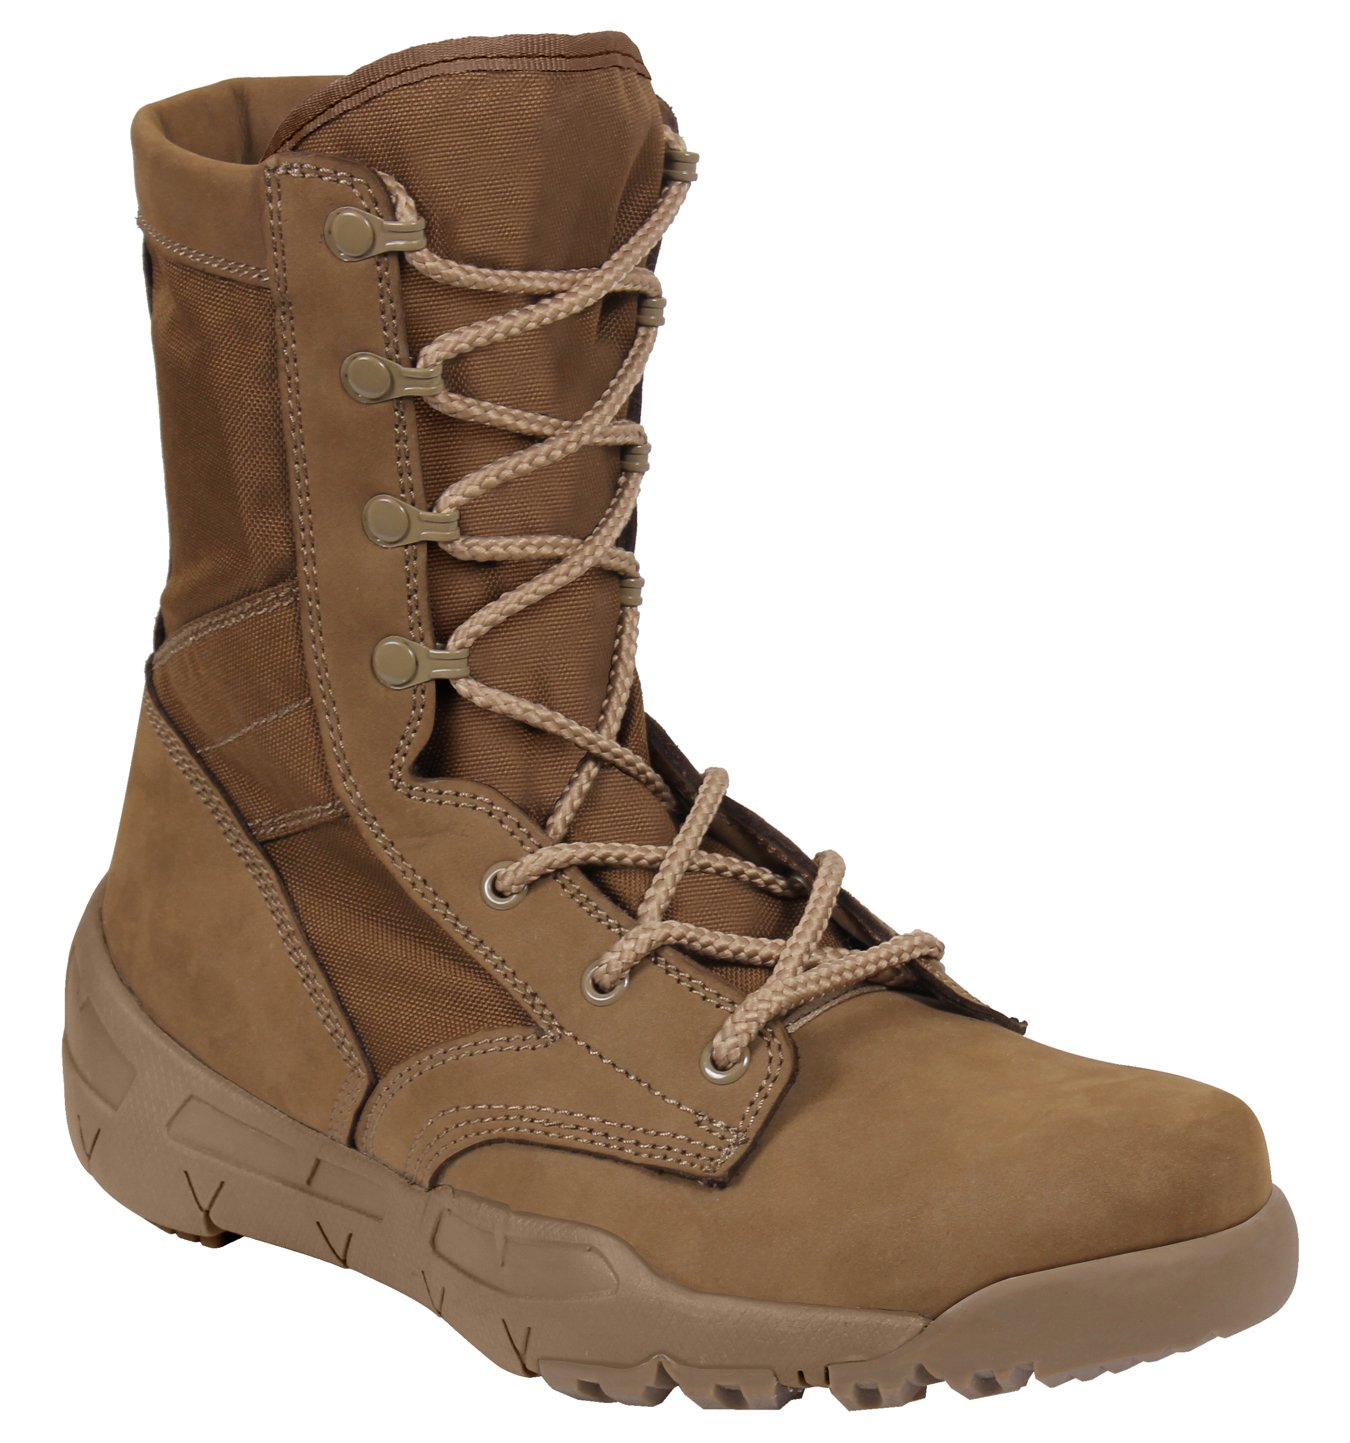 Rothco V-Max Lightweight Tactical Boot, AR 670-1 Coyote Brown, 9 by Rothco